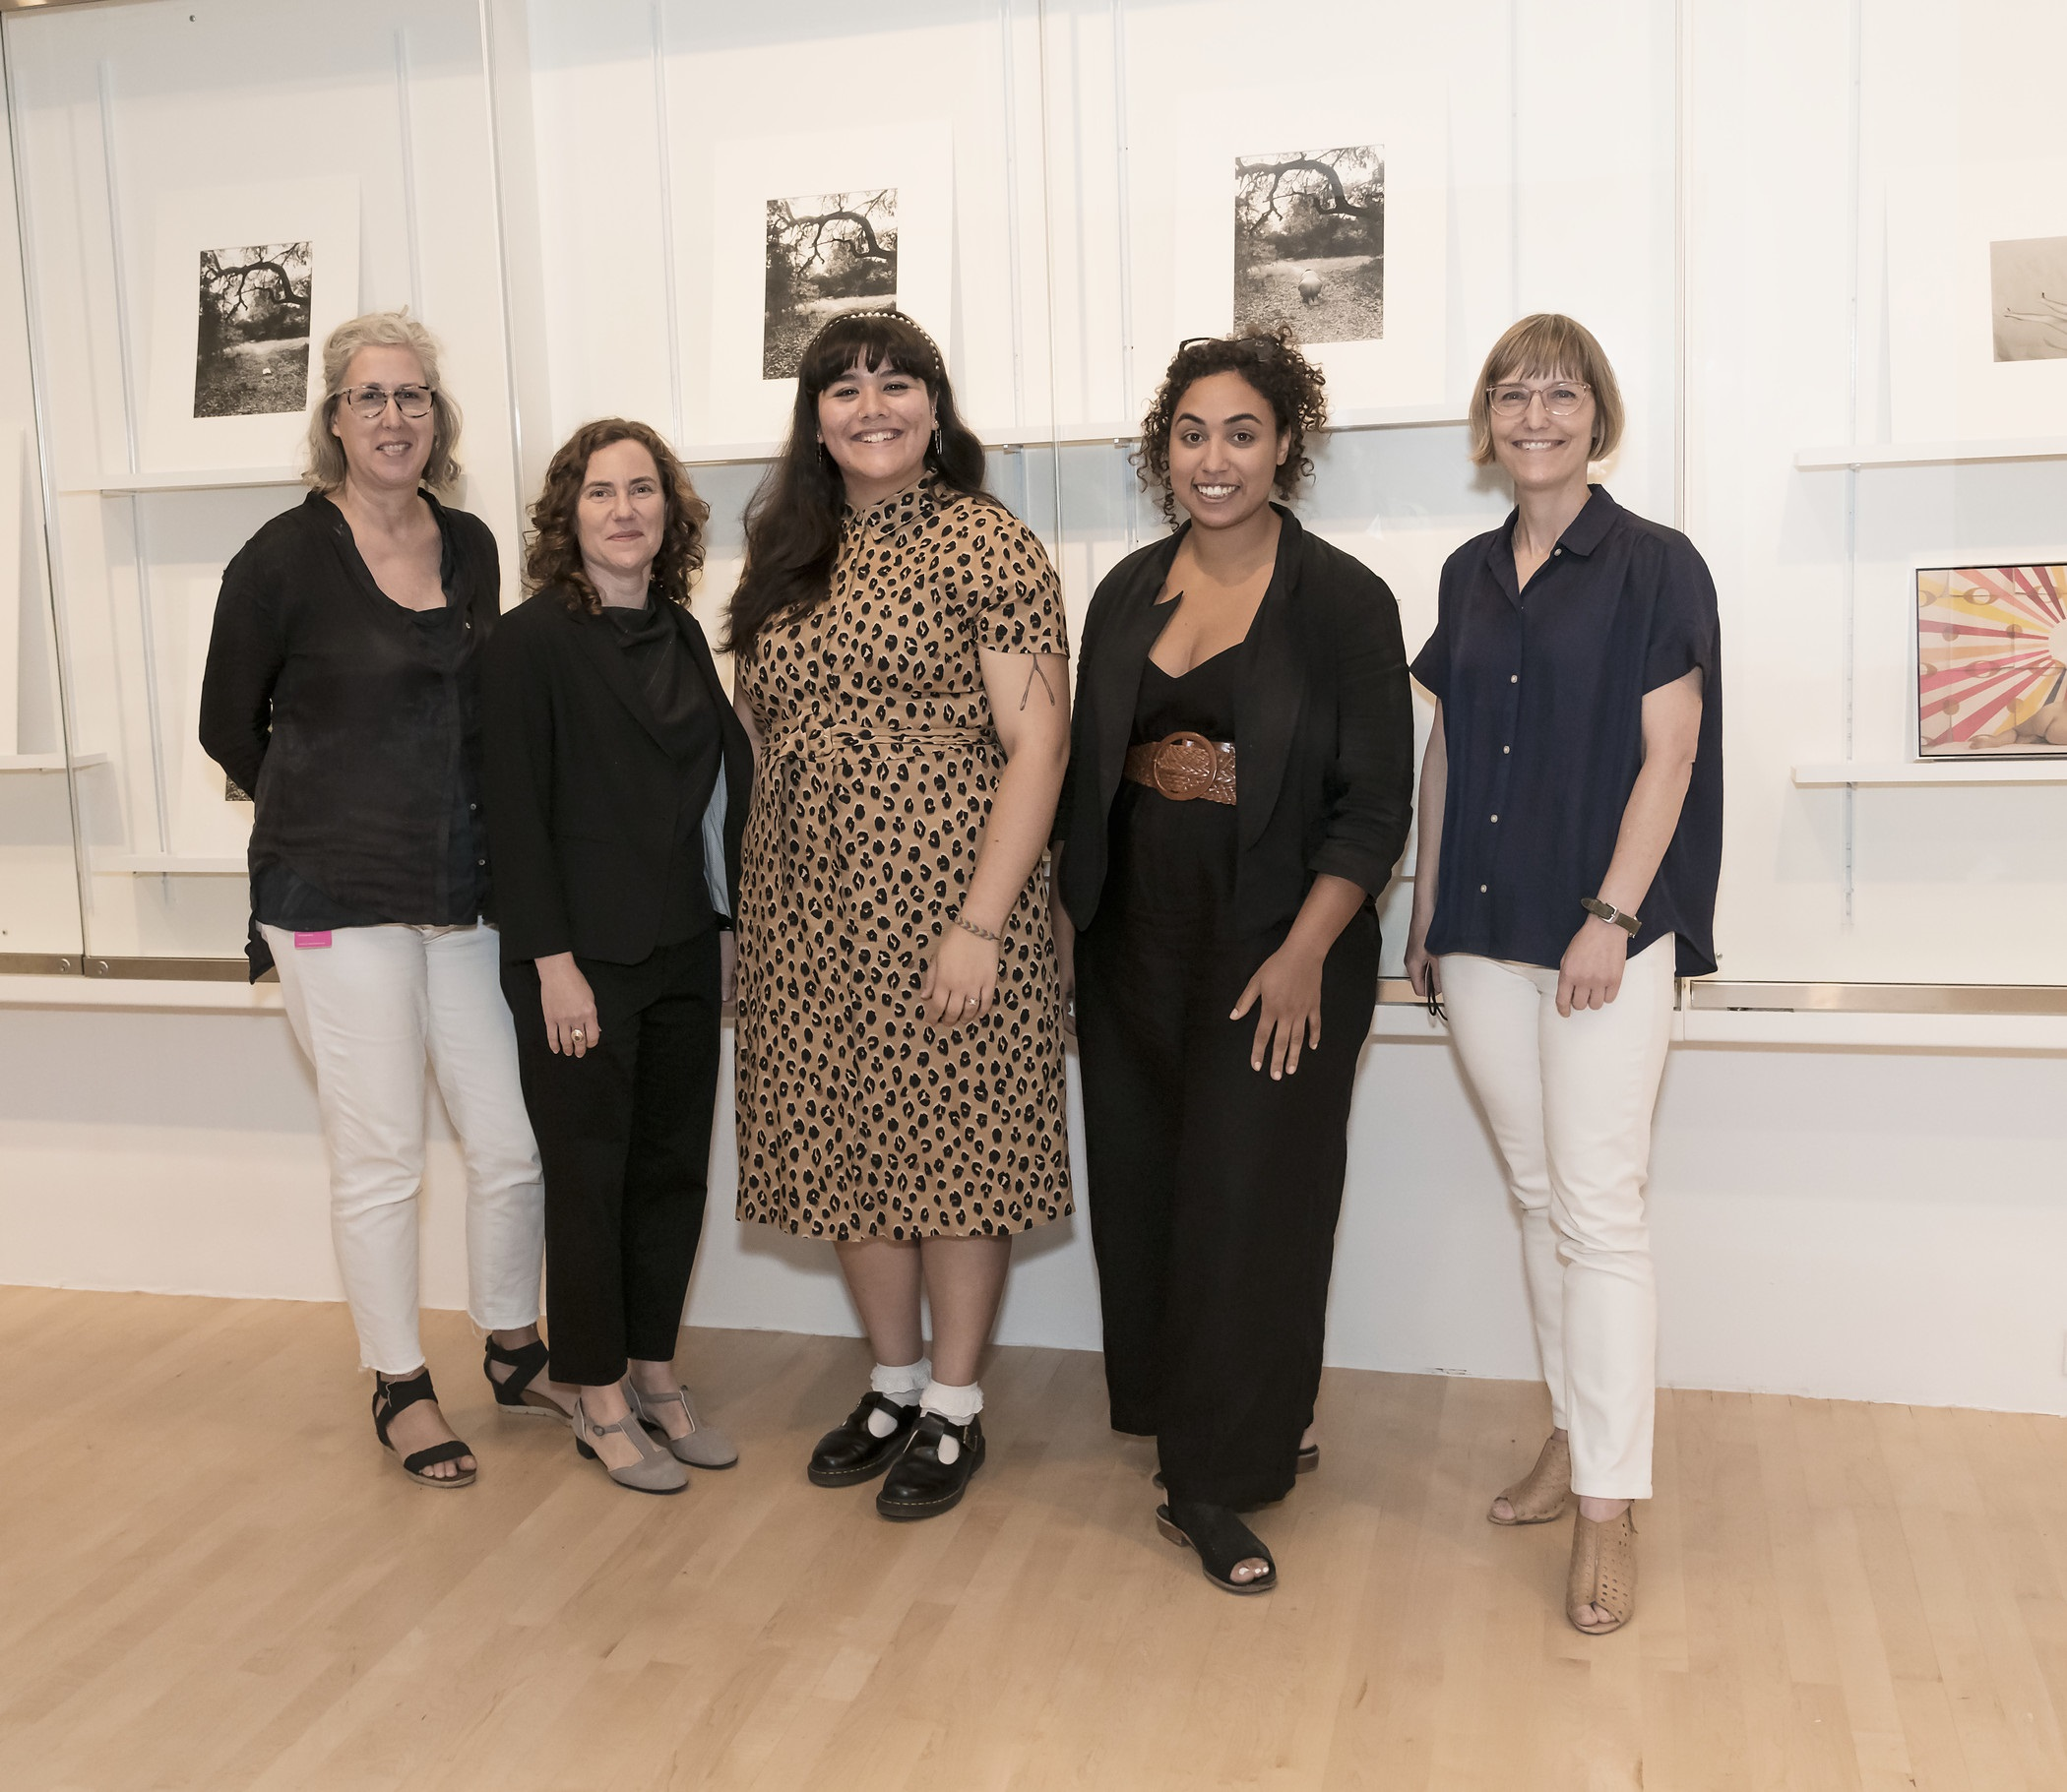 From left: Eve Schillo, Assistant Curator, Photography; Rebecca Morse, Curator, Photography; Danielle Pesqueira, 2018–20 Mellon Undergraduate Curatorial Fellow; Dhyandra Lawson, Curatorial Assistant, Photography; and Britt Salvesen, Department Head and Curator of Photography and Prints & Drawings